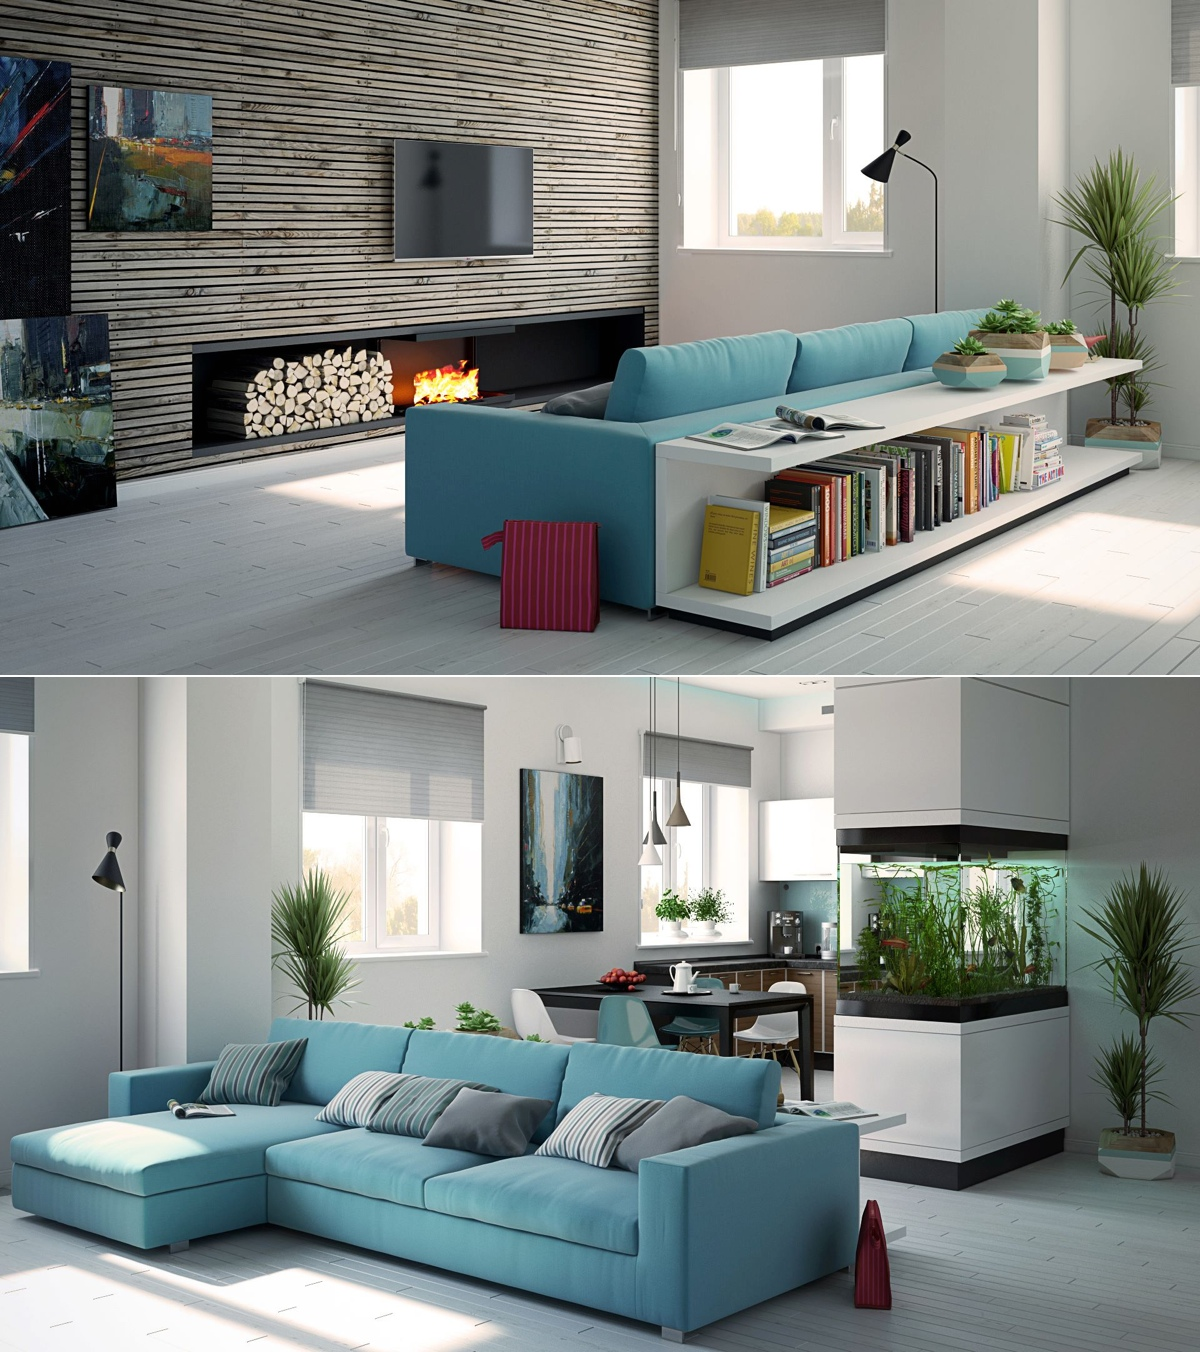 Awesomely Stylish Urban Living Rooms. Living Rooms To Go. Living Room Pillows. Living Room Round Sofa Set. Decorating Ideas For A Gray And Yellow Living Room. Furniture Set Up Living Room. Living Room Ideas Tan Leather Sofa. Storage Side Tables Living Room. Toshi S Living Room New York